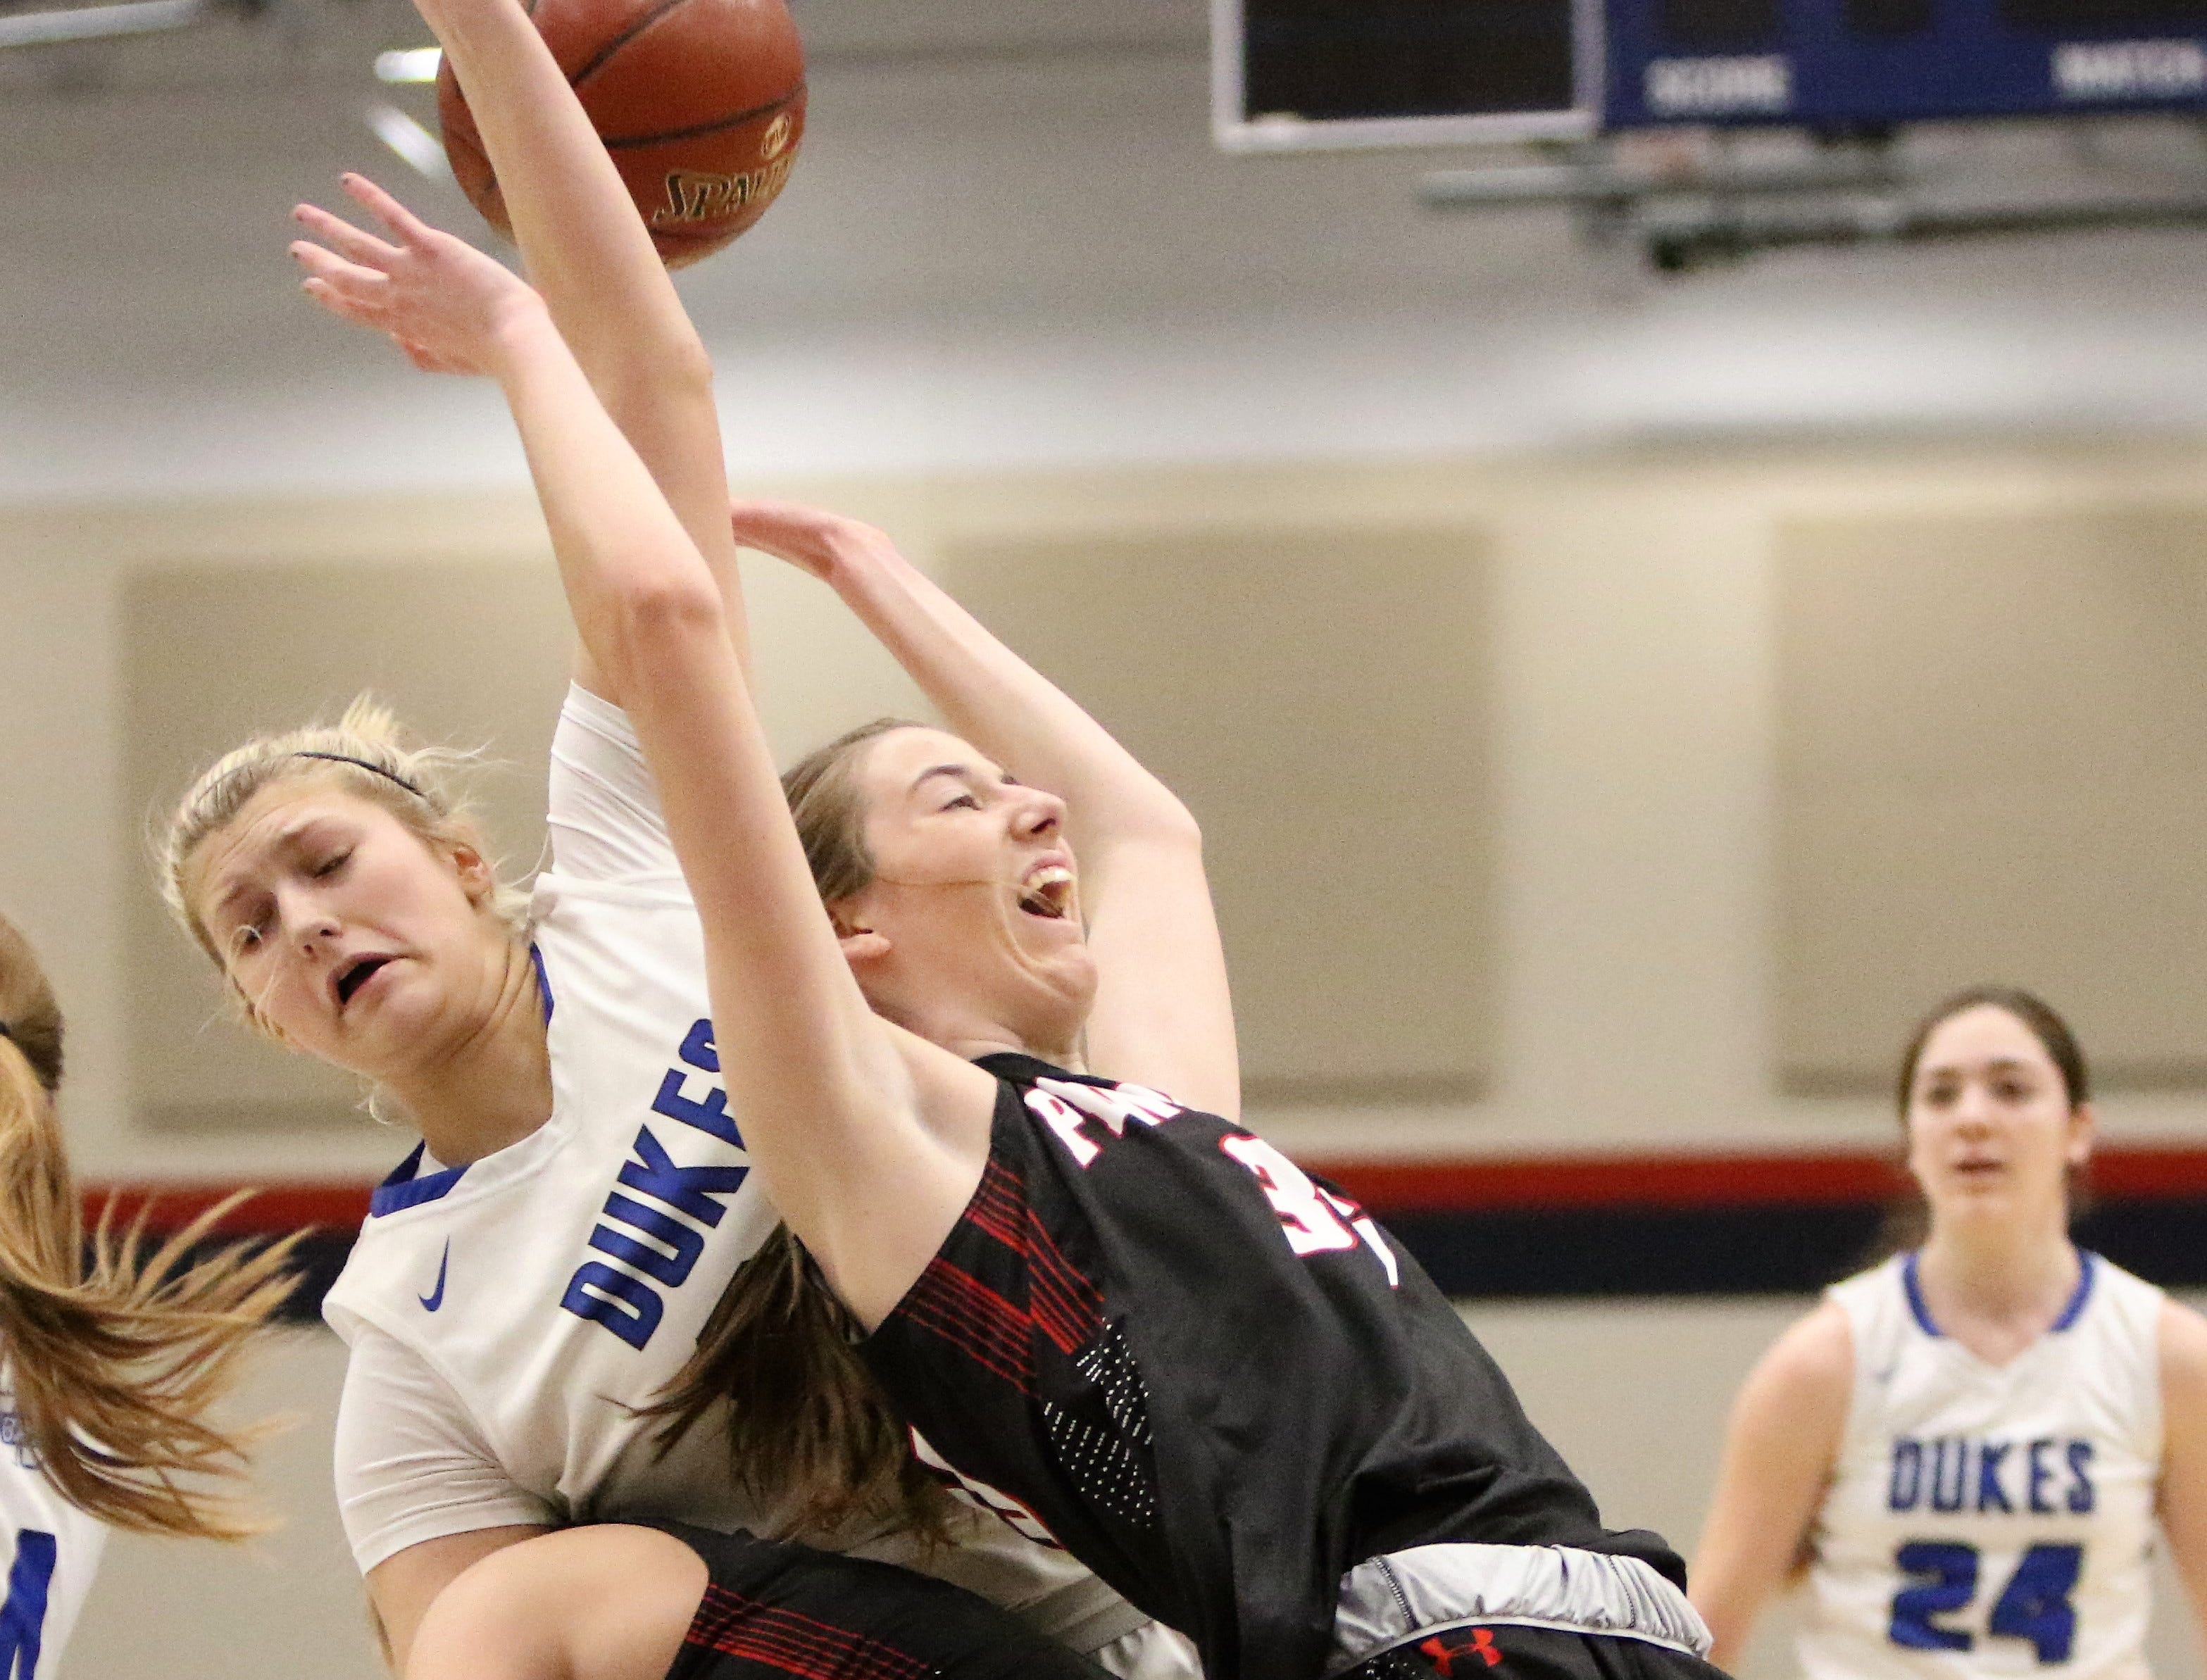 Whitefish Bay forward Ava Alt (middle) goes down with a pair of Pewaukee players while battling for a rebound during a sectional final game on March 2, 2019.